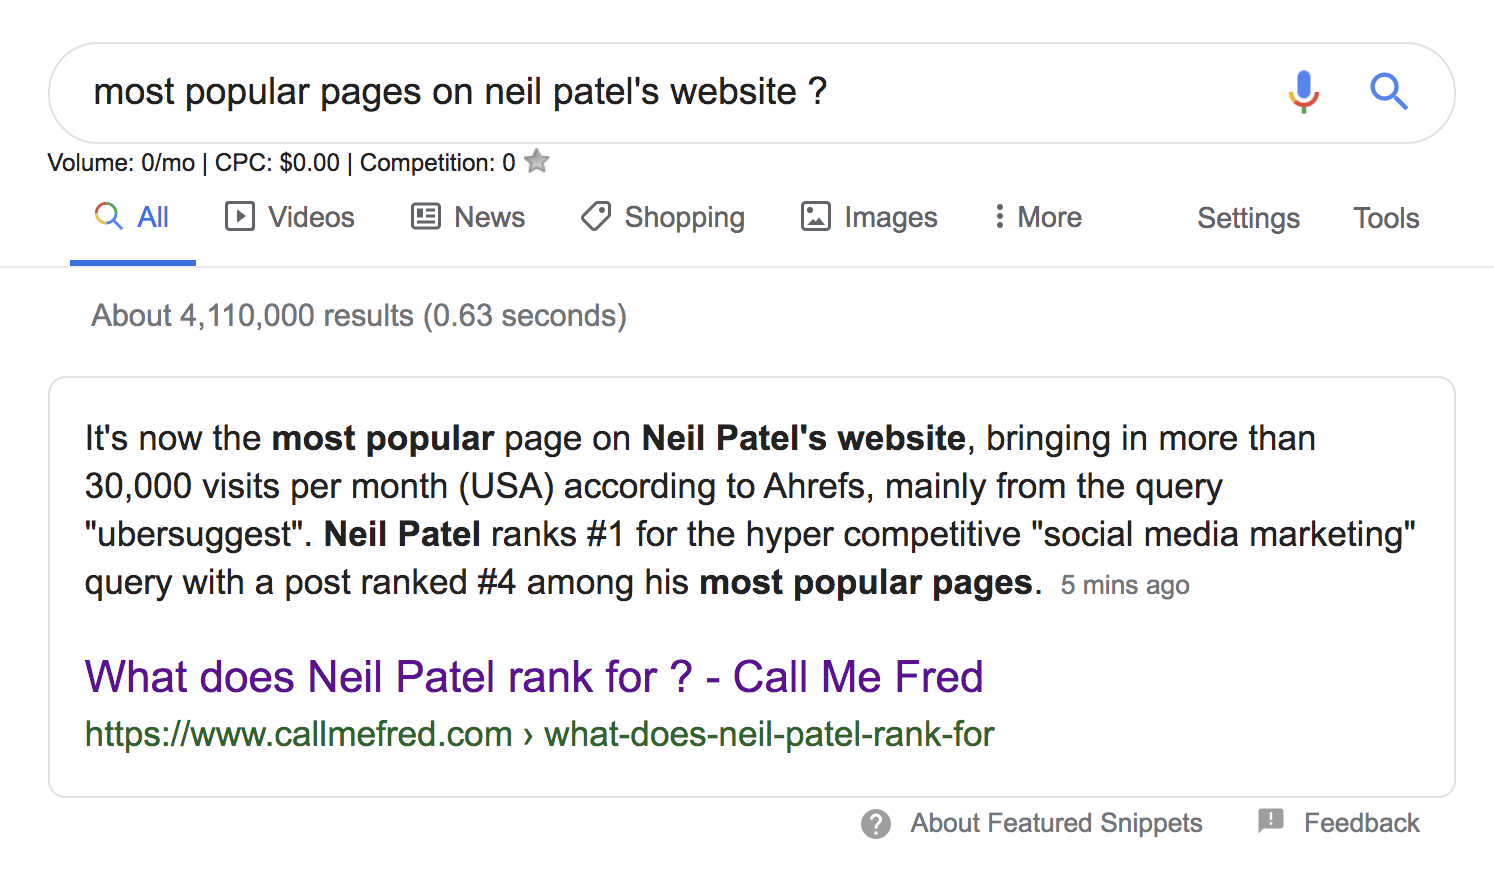 most popular pages neilpatel.com